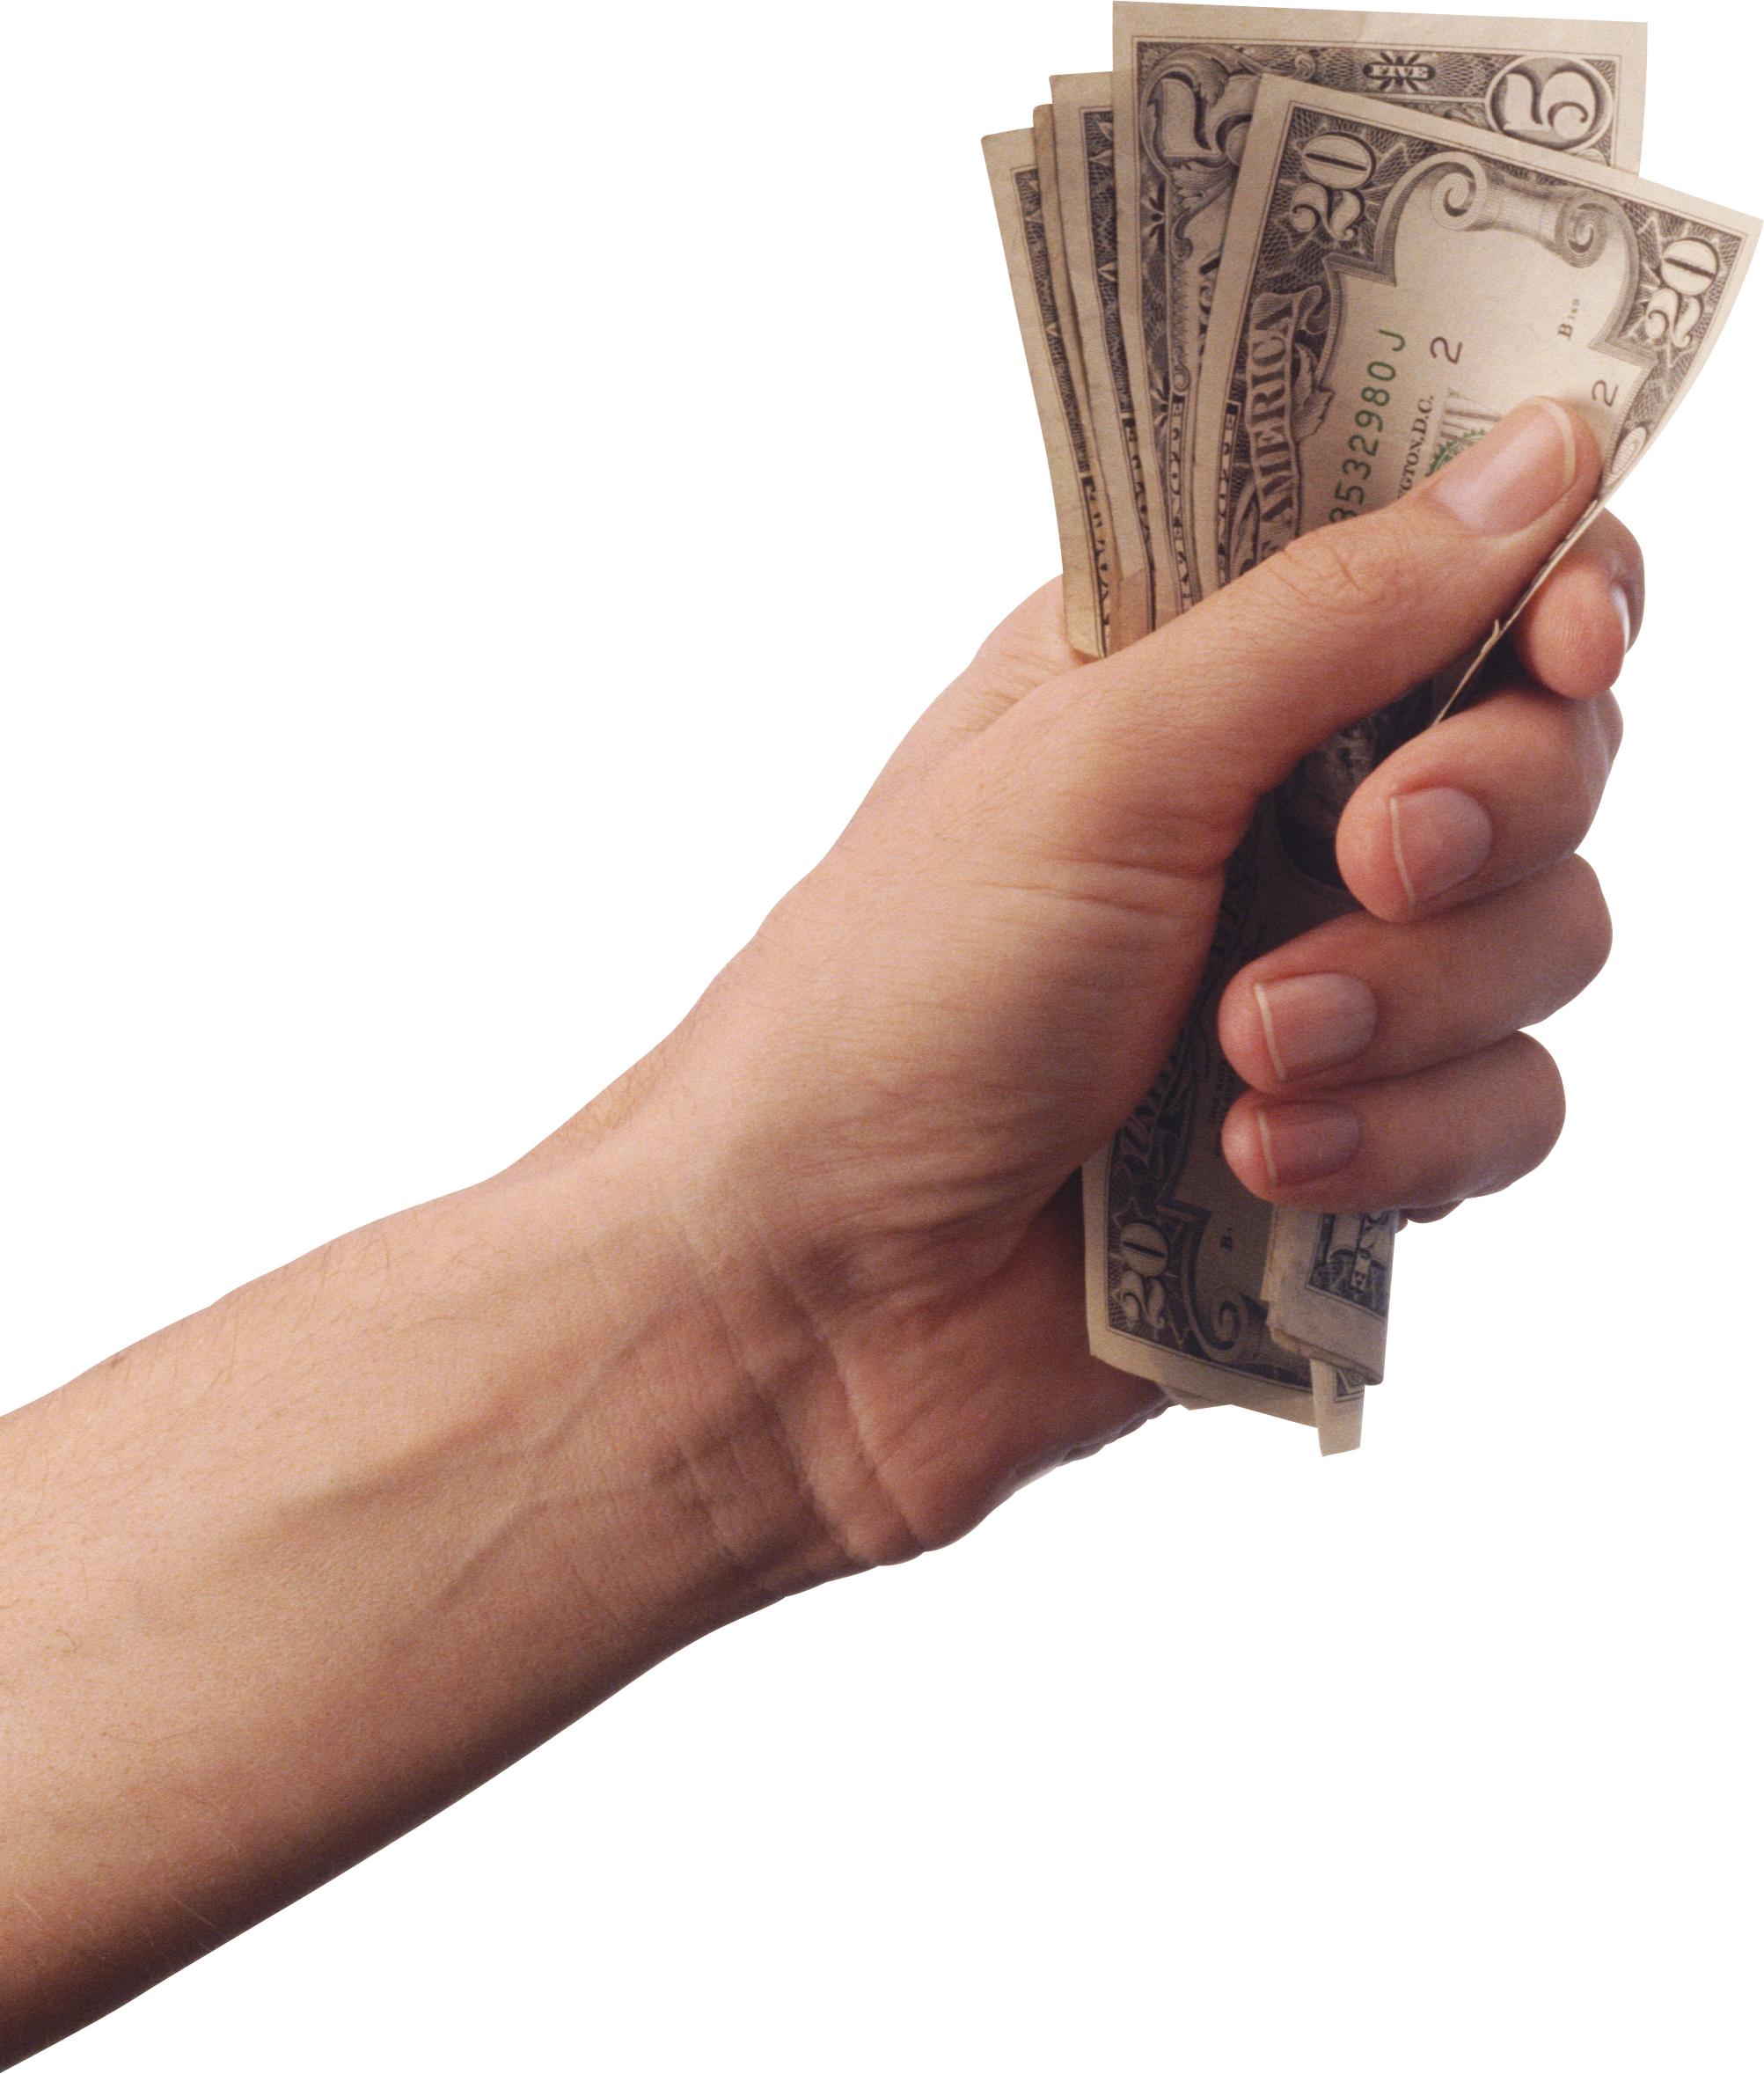 Hand holding three isolated. Hands clipart money